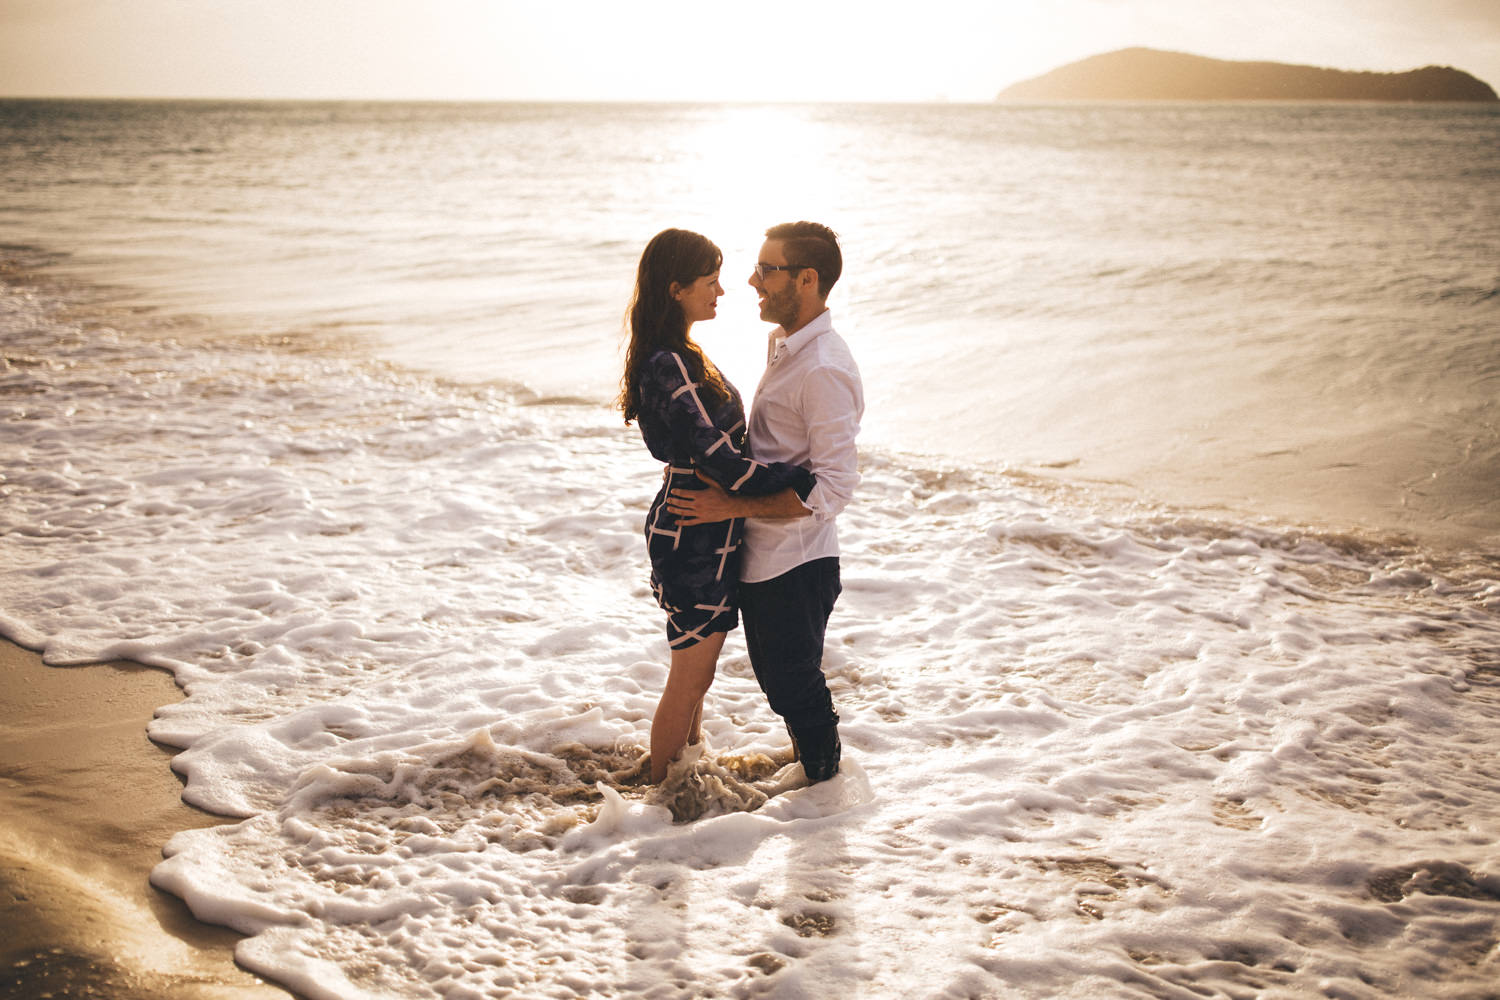 Rob-Kaity-Island-Engagement-Session-0047.jpg